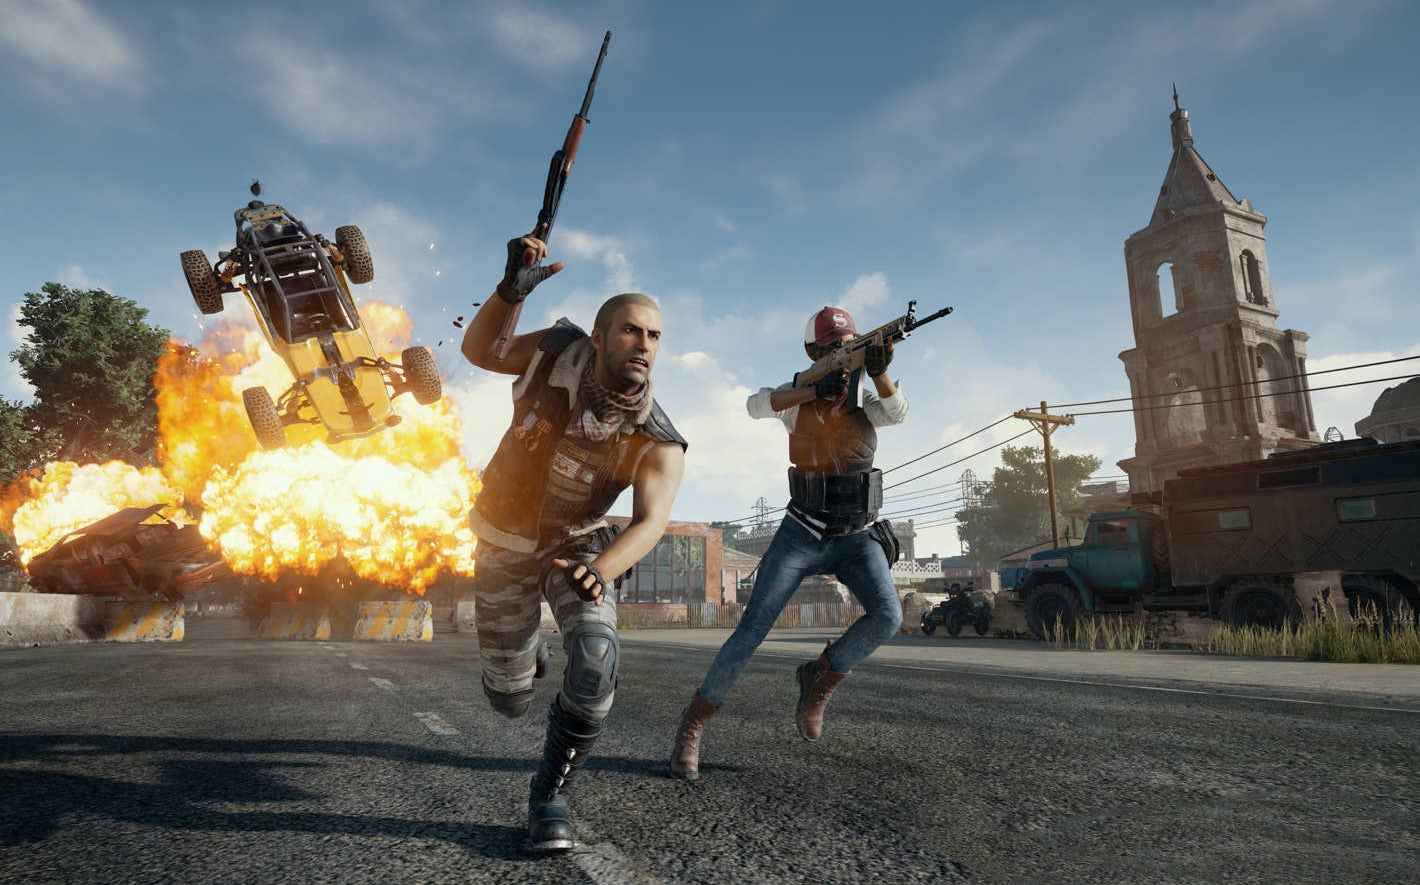 The minimap for PUBG's new desert map has been datamined